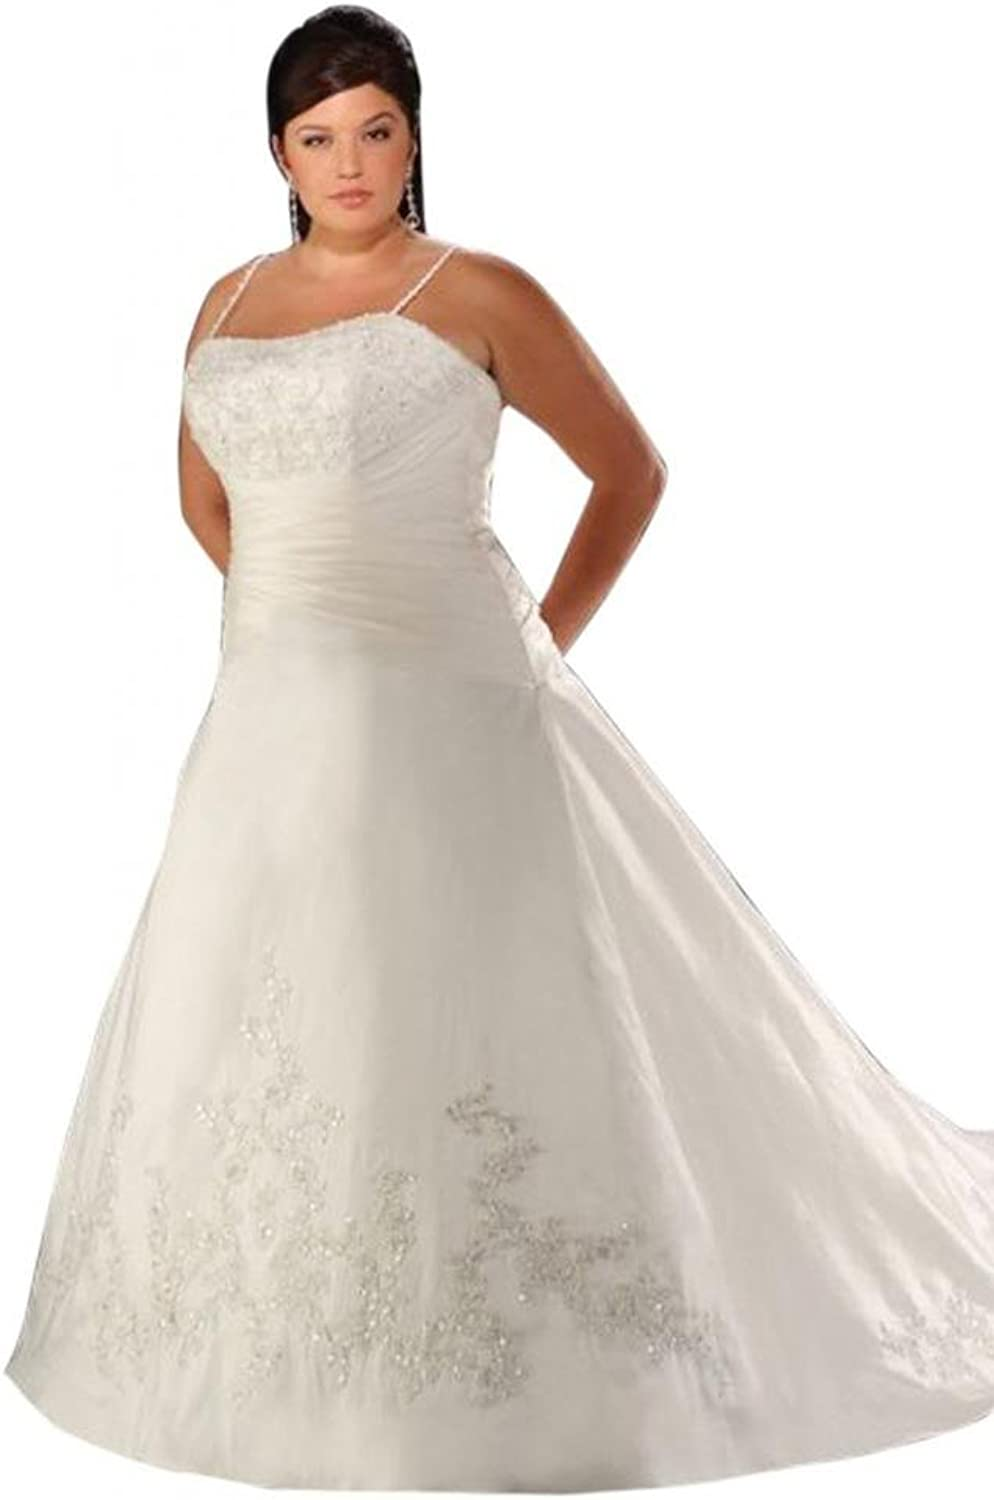 Passat Wedding Dress With Removable Skirt